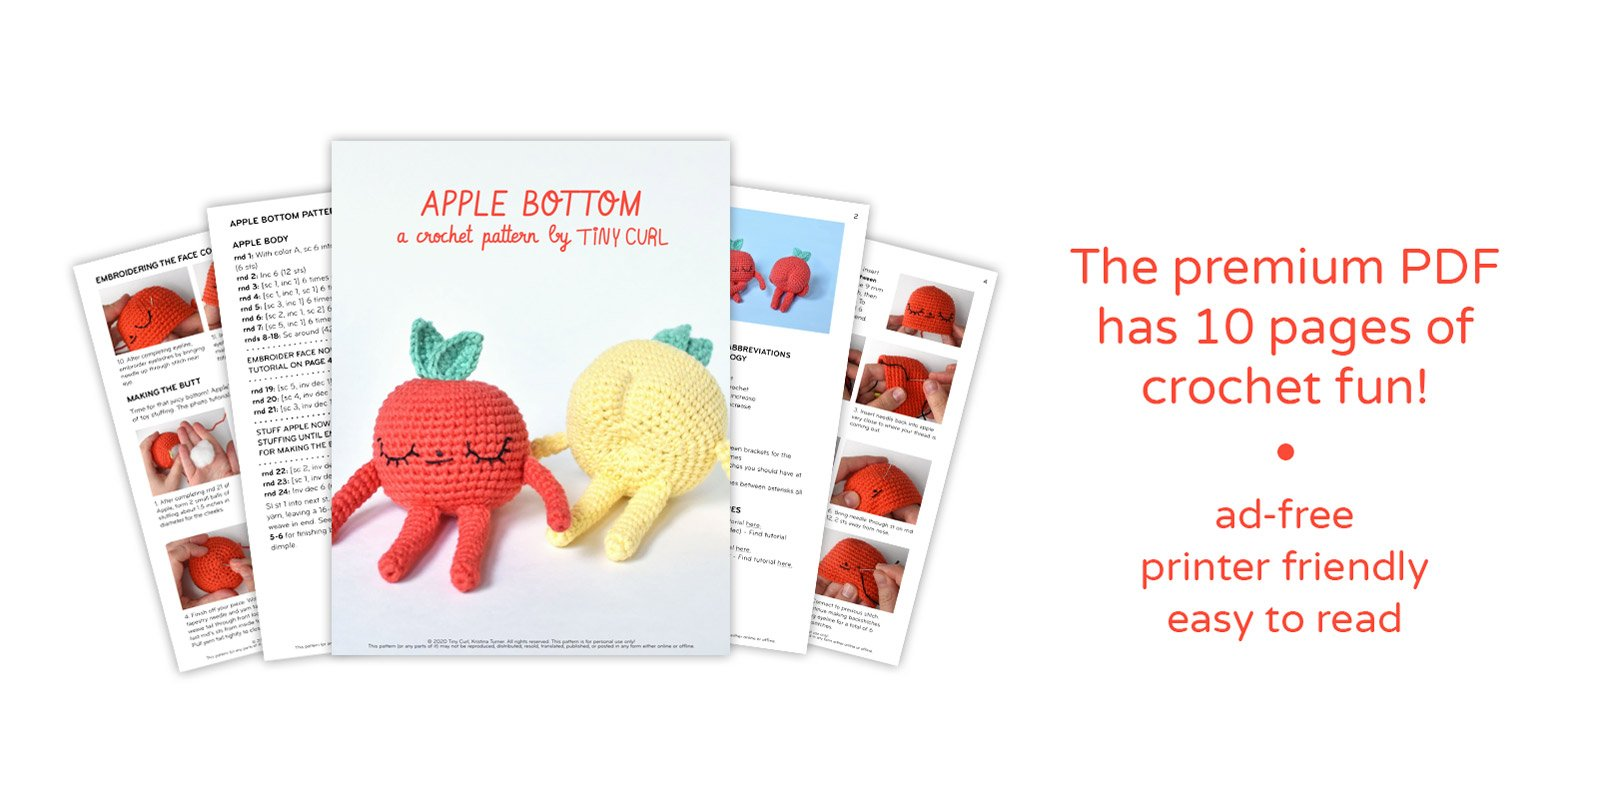 "A graphic showing the premium pdf for the apple crochet pattern. The image says ""the premium PDF has 10 pages of crochet fun! ad-free, printer friendly, easy to read"""